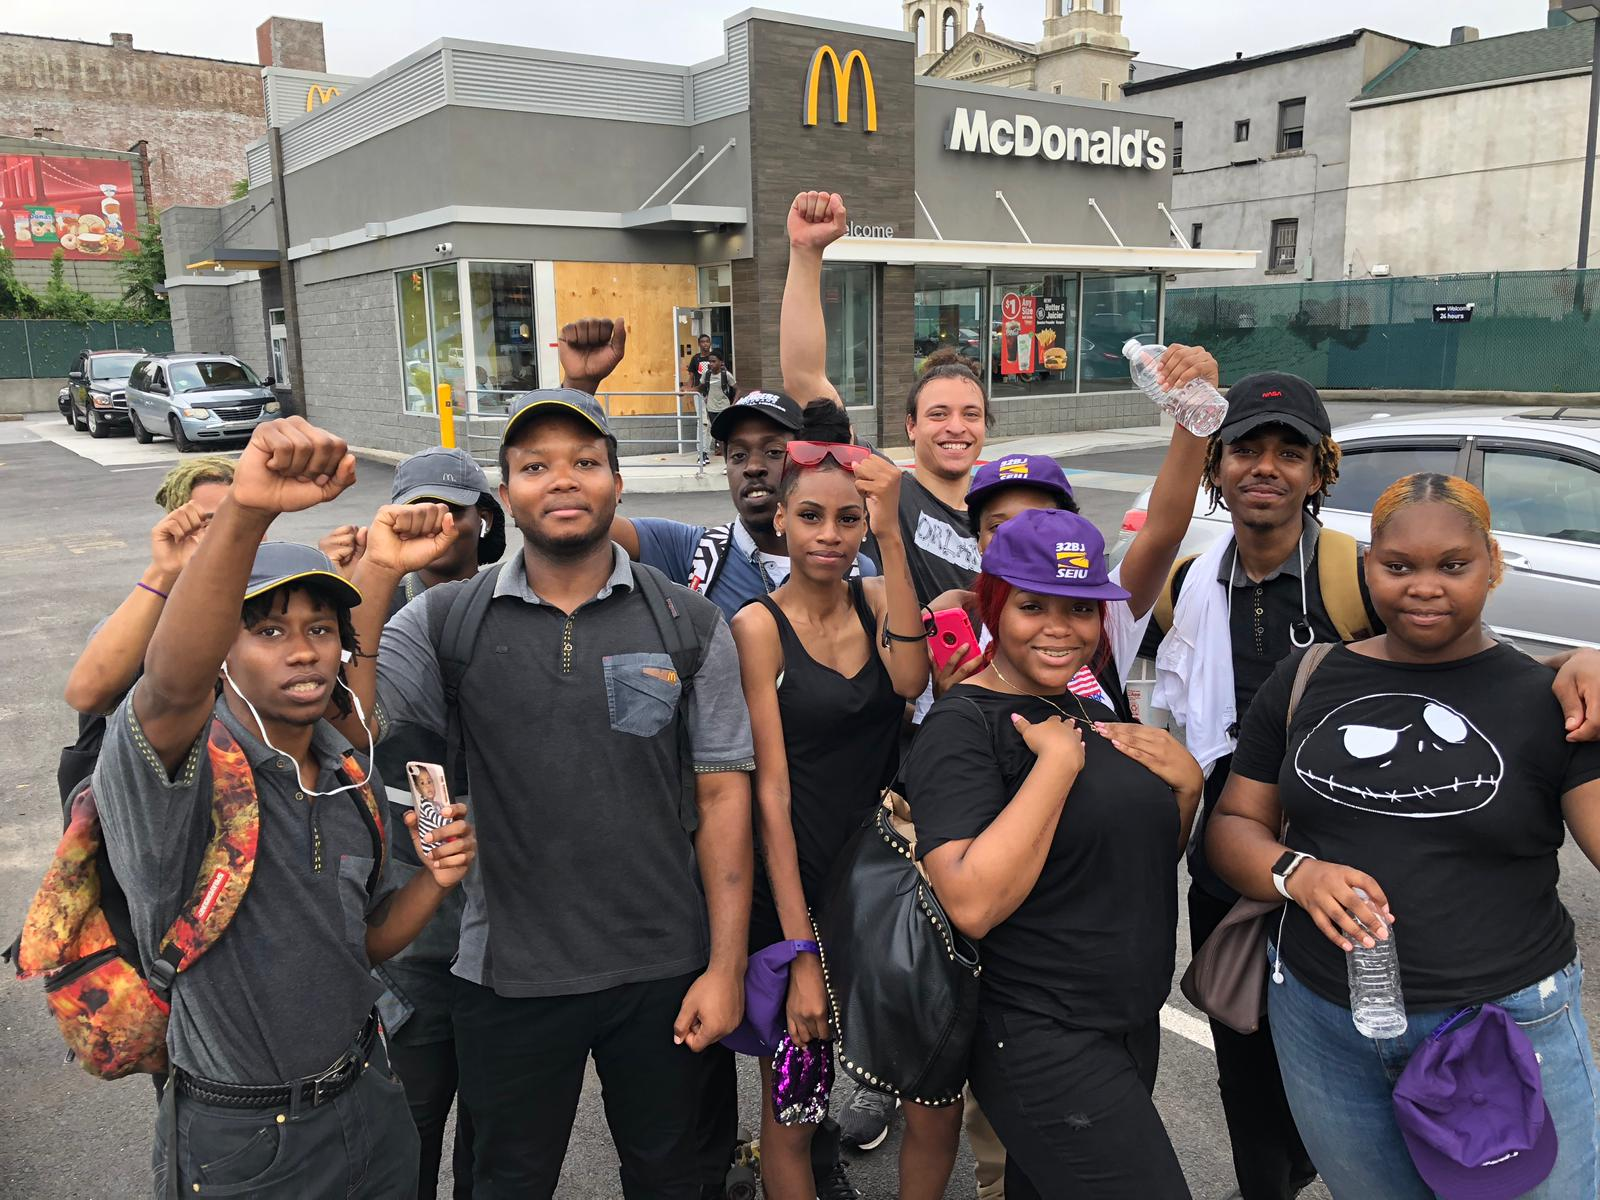 'Fast Food Workers Deserve a Voice on the Job and a Contract'